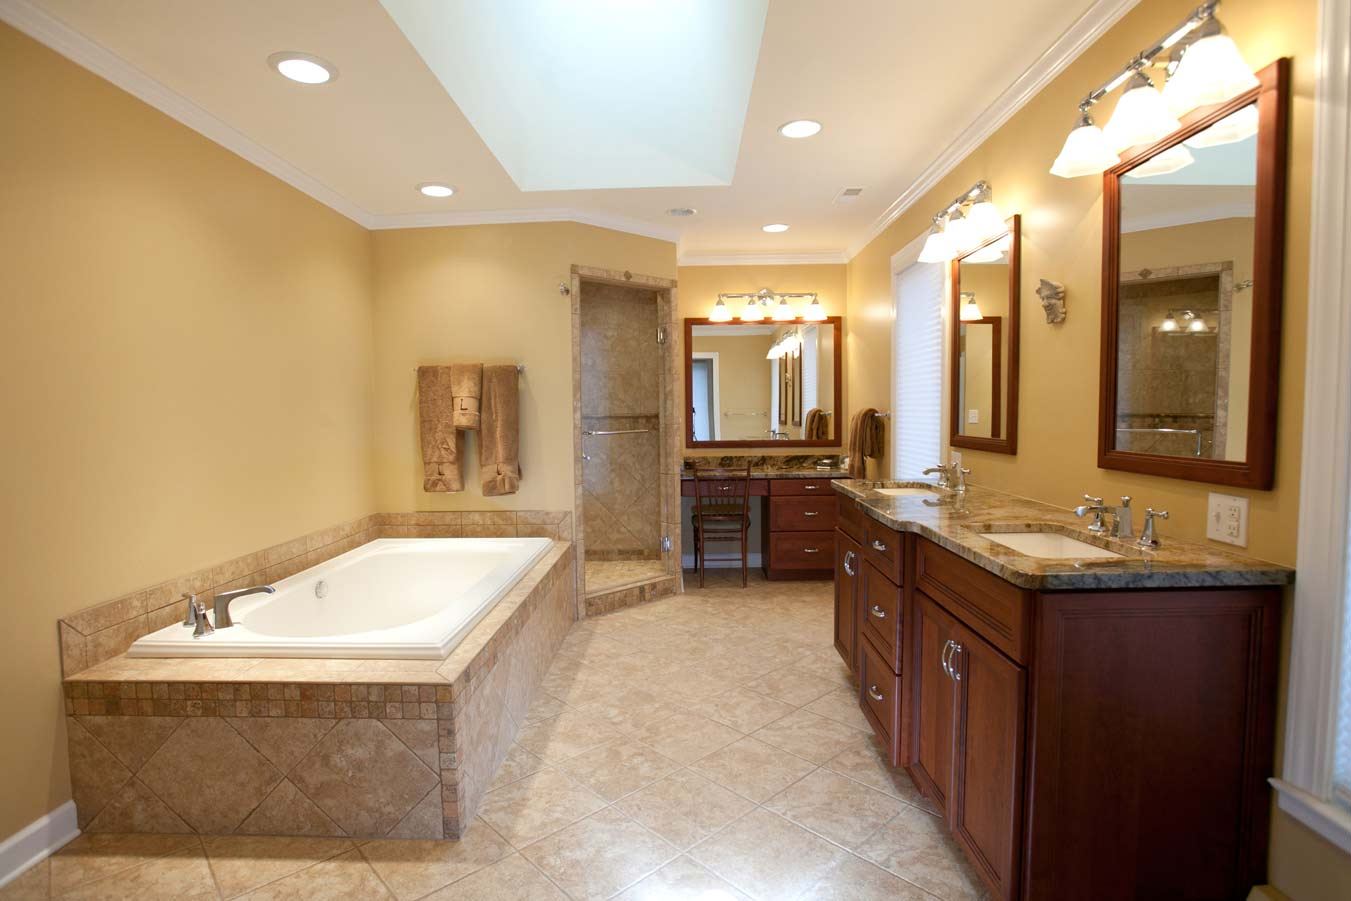 25 best bathroom remodeling ideas and inspiration Bathroom design ideas for a small bathroom